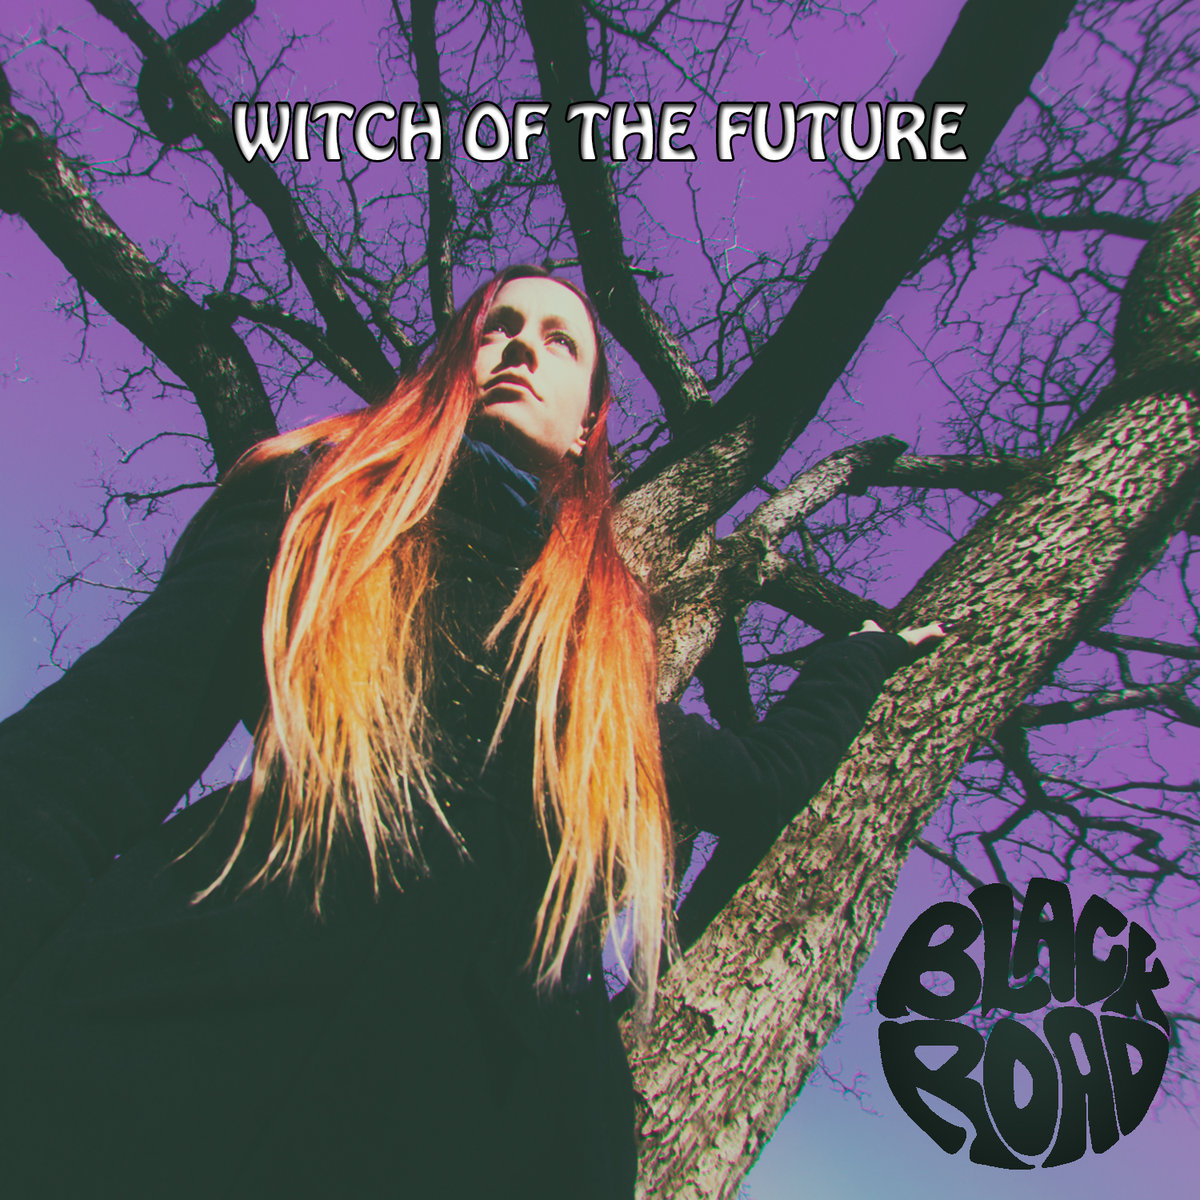 black road witch of the future